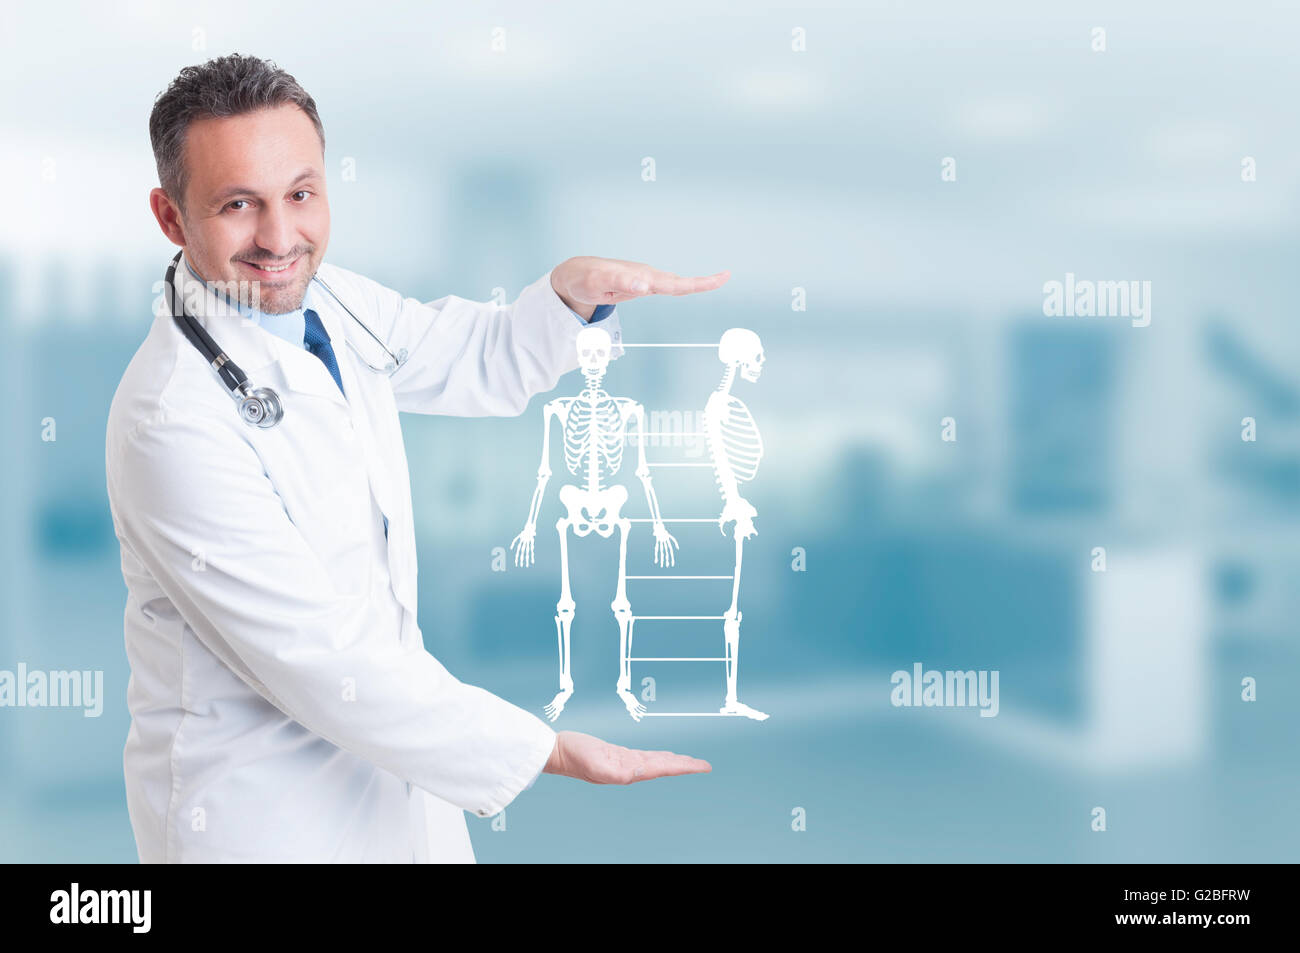 Handsome orthopedist doctor holding skeleton model hologram on his hands and smiling as healthy bone concept with - Stock Image